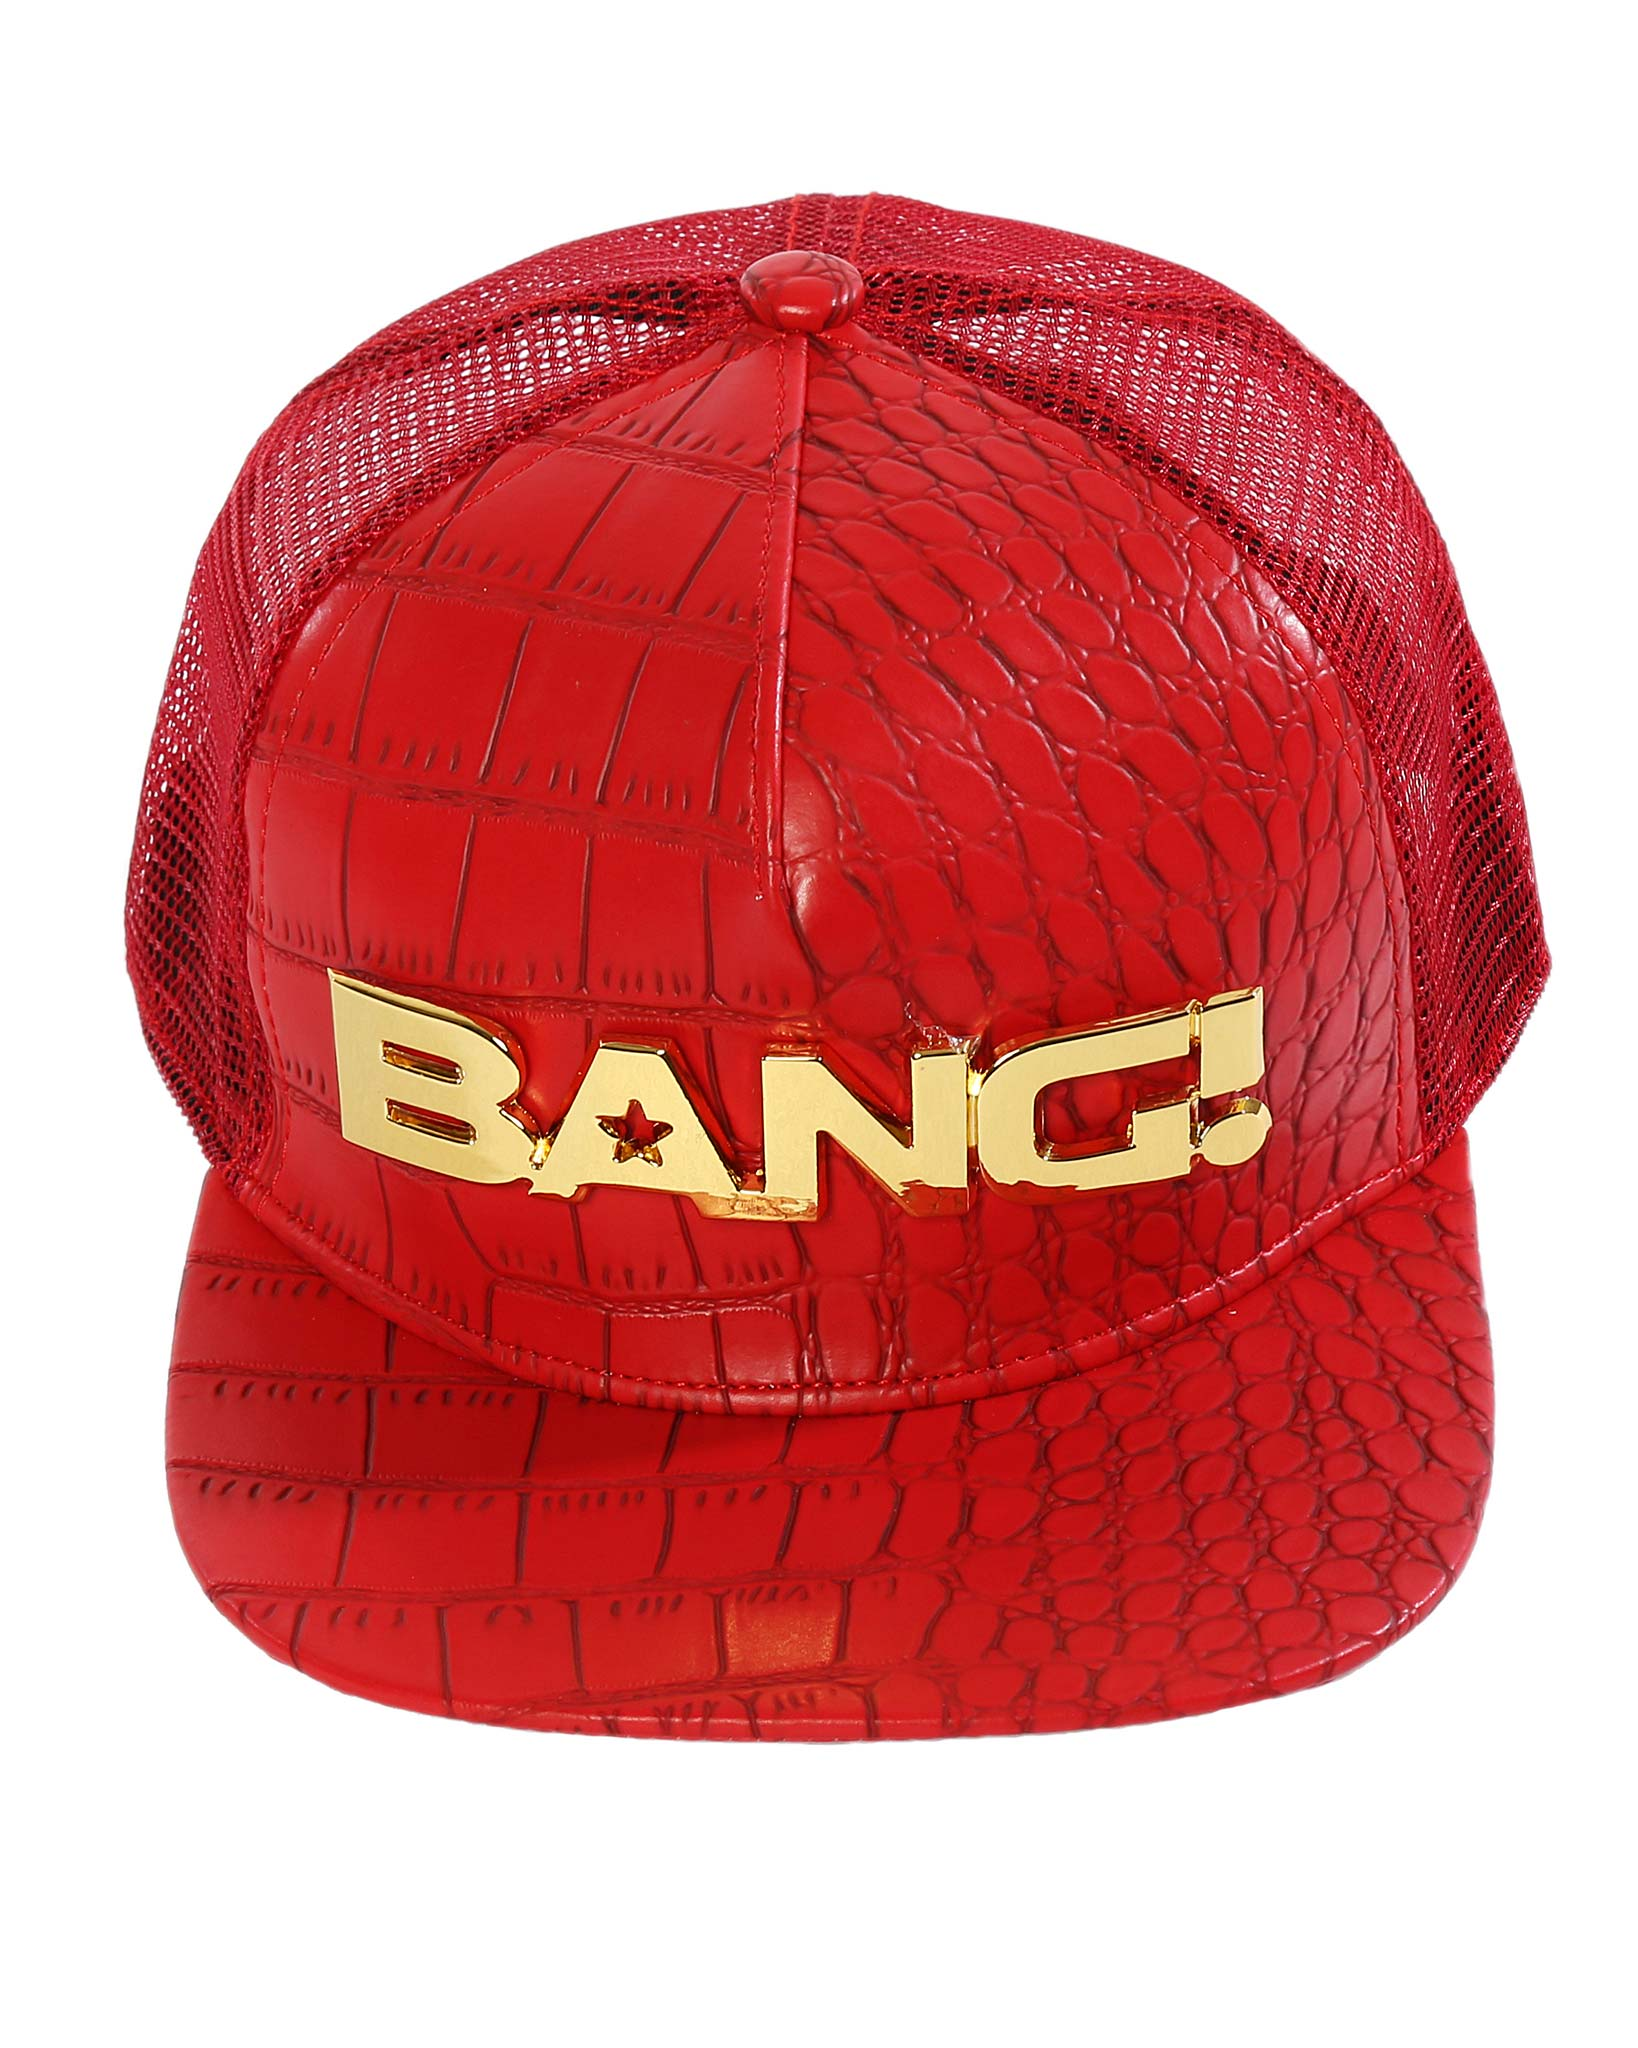 Bang Of Gold Hat (Red) Bang Clothes Beach Nightlife Gym Gear For Men Accessories